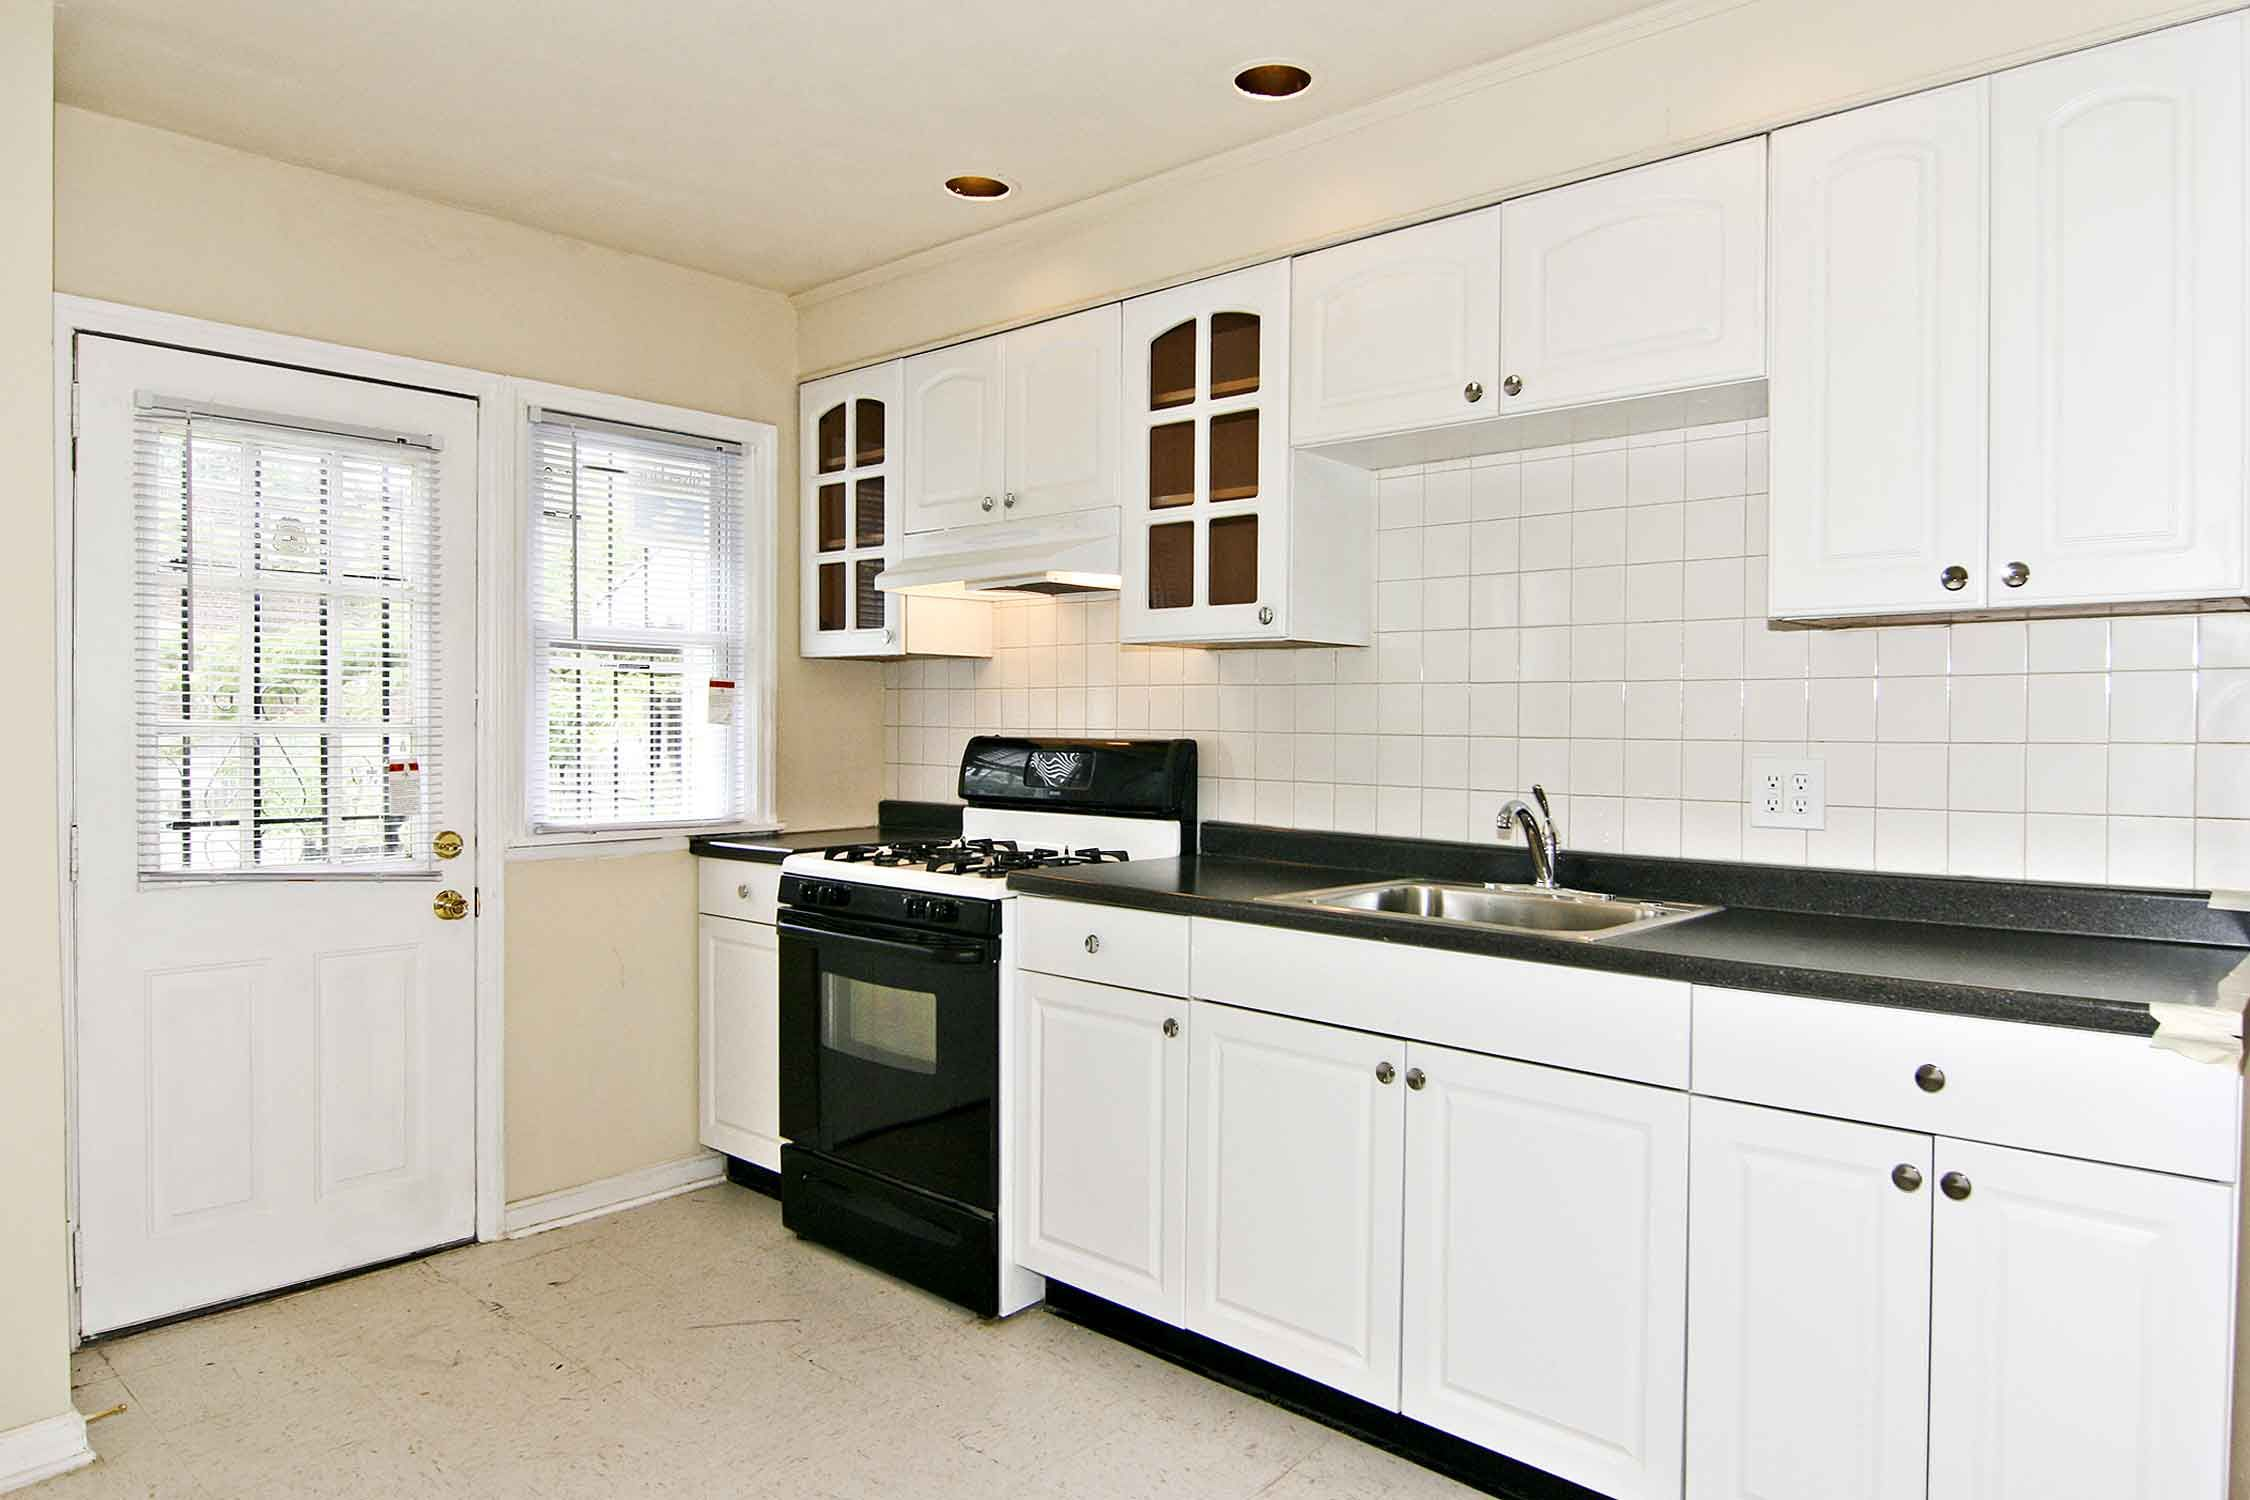 kitchen cabinets design gorgeous decorating ideas for from Deluxe ...